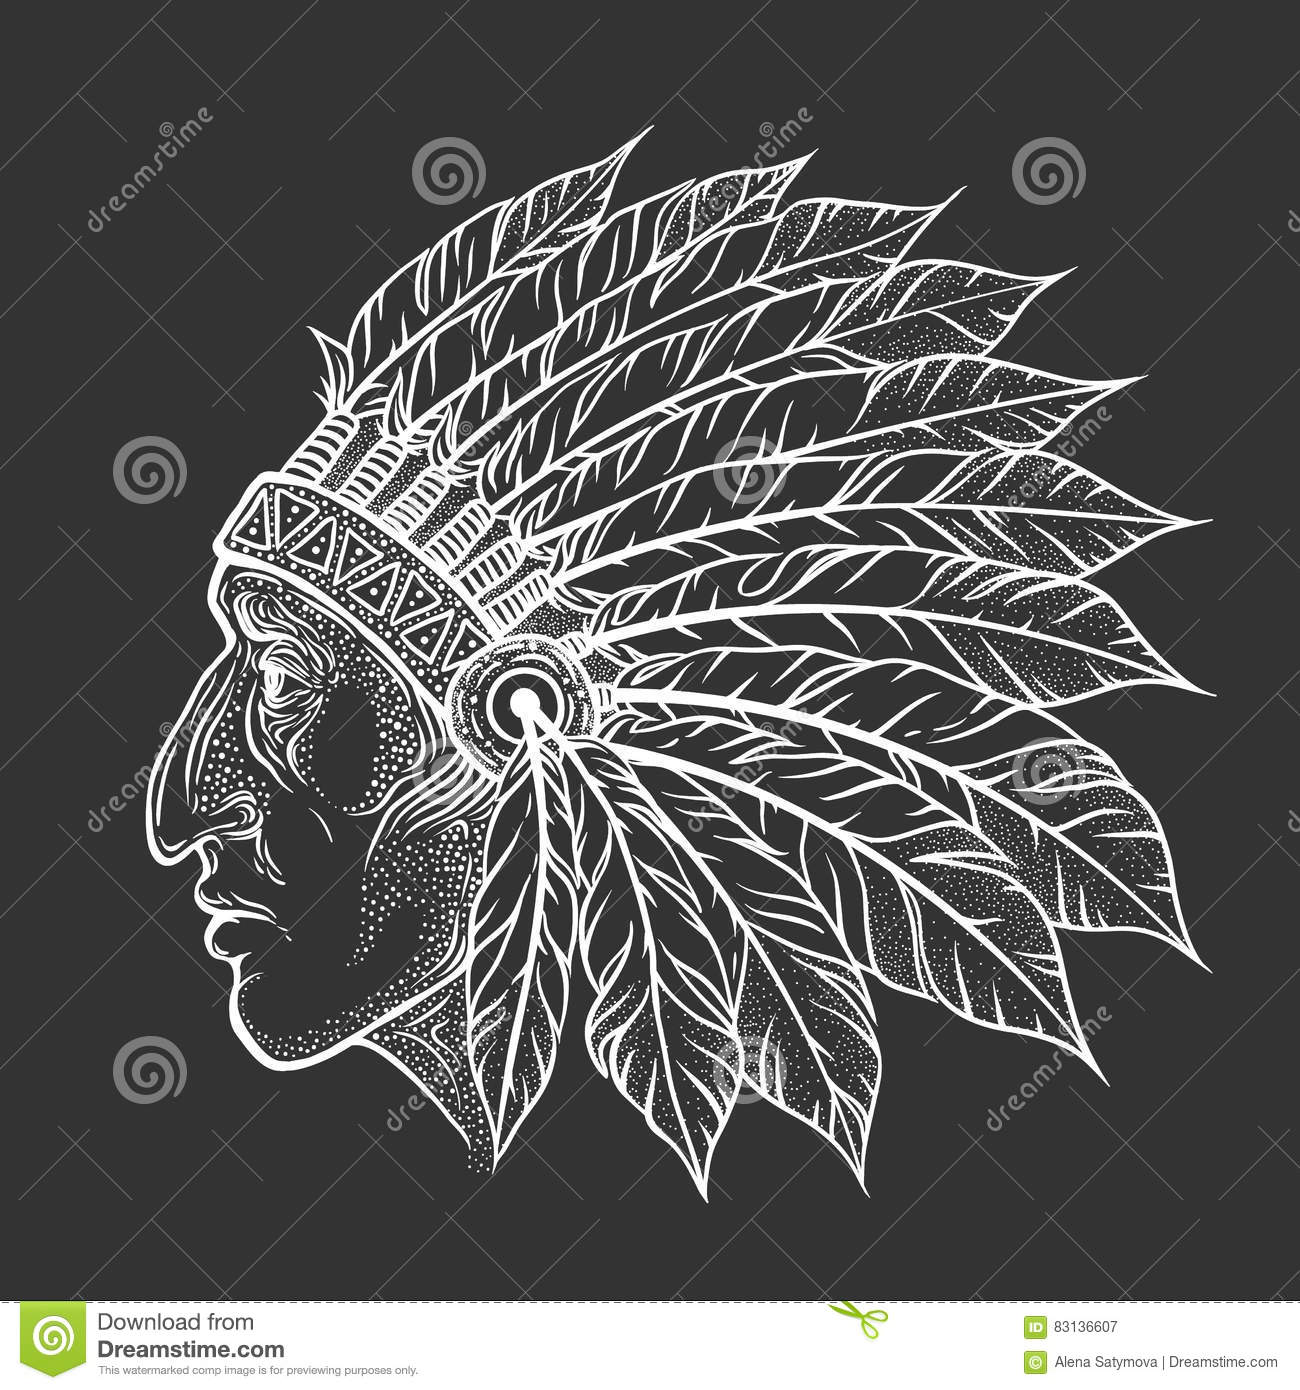 1e548d2bf Native American Indian chief head profile. Vector vintage illustration.  Hand drawn style. Blackwork tattoo. Bohemian element